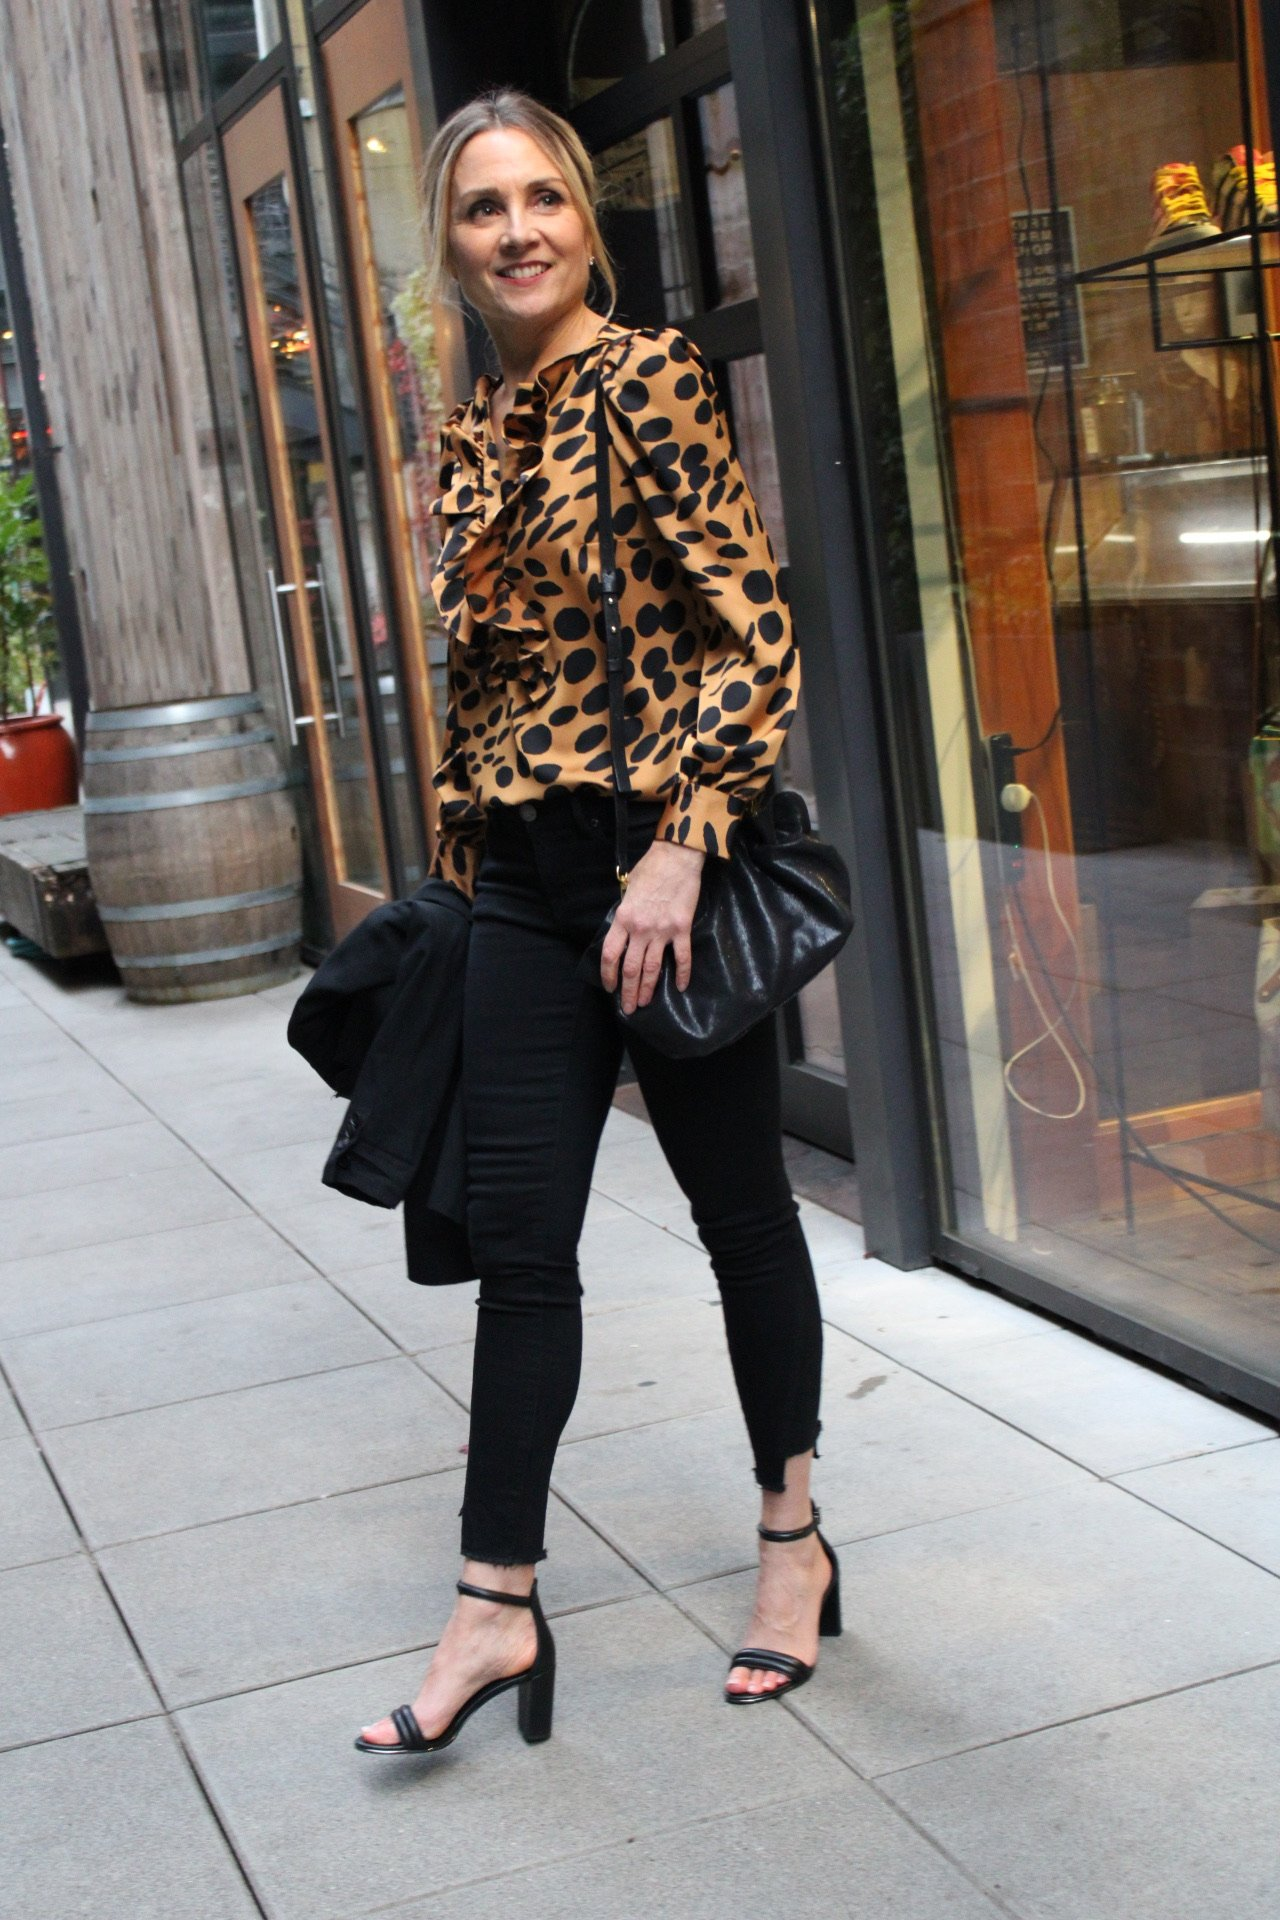 leopard top with black jeans and black heels